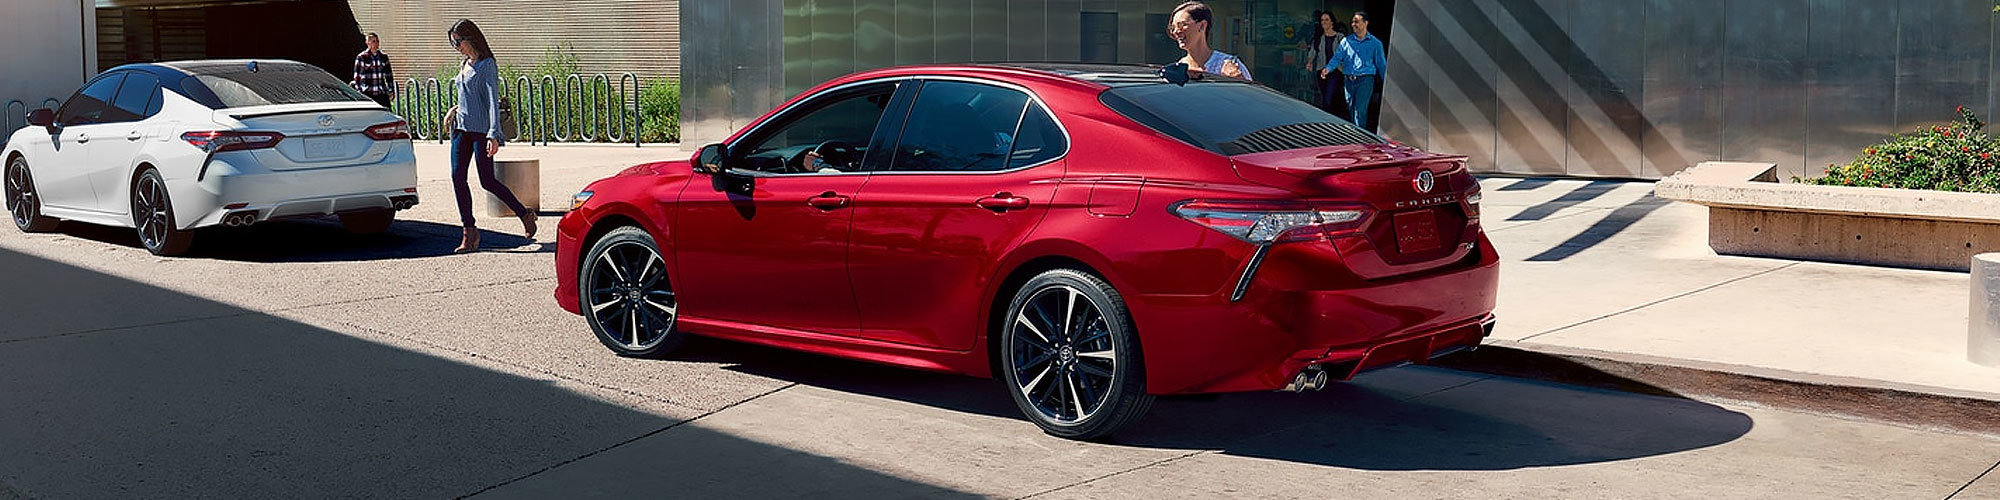 2019 Toyota Camry Sedan | Toyota Cars for Sale in